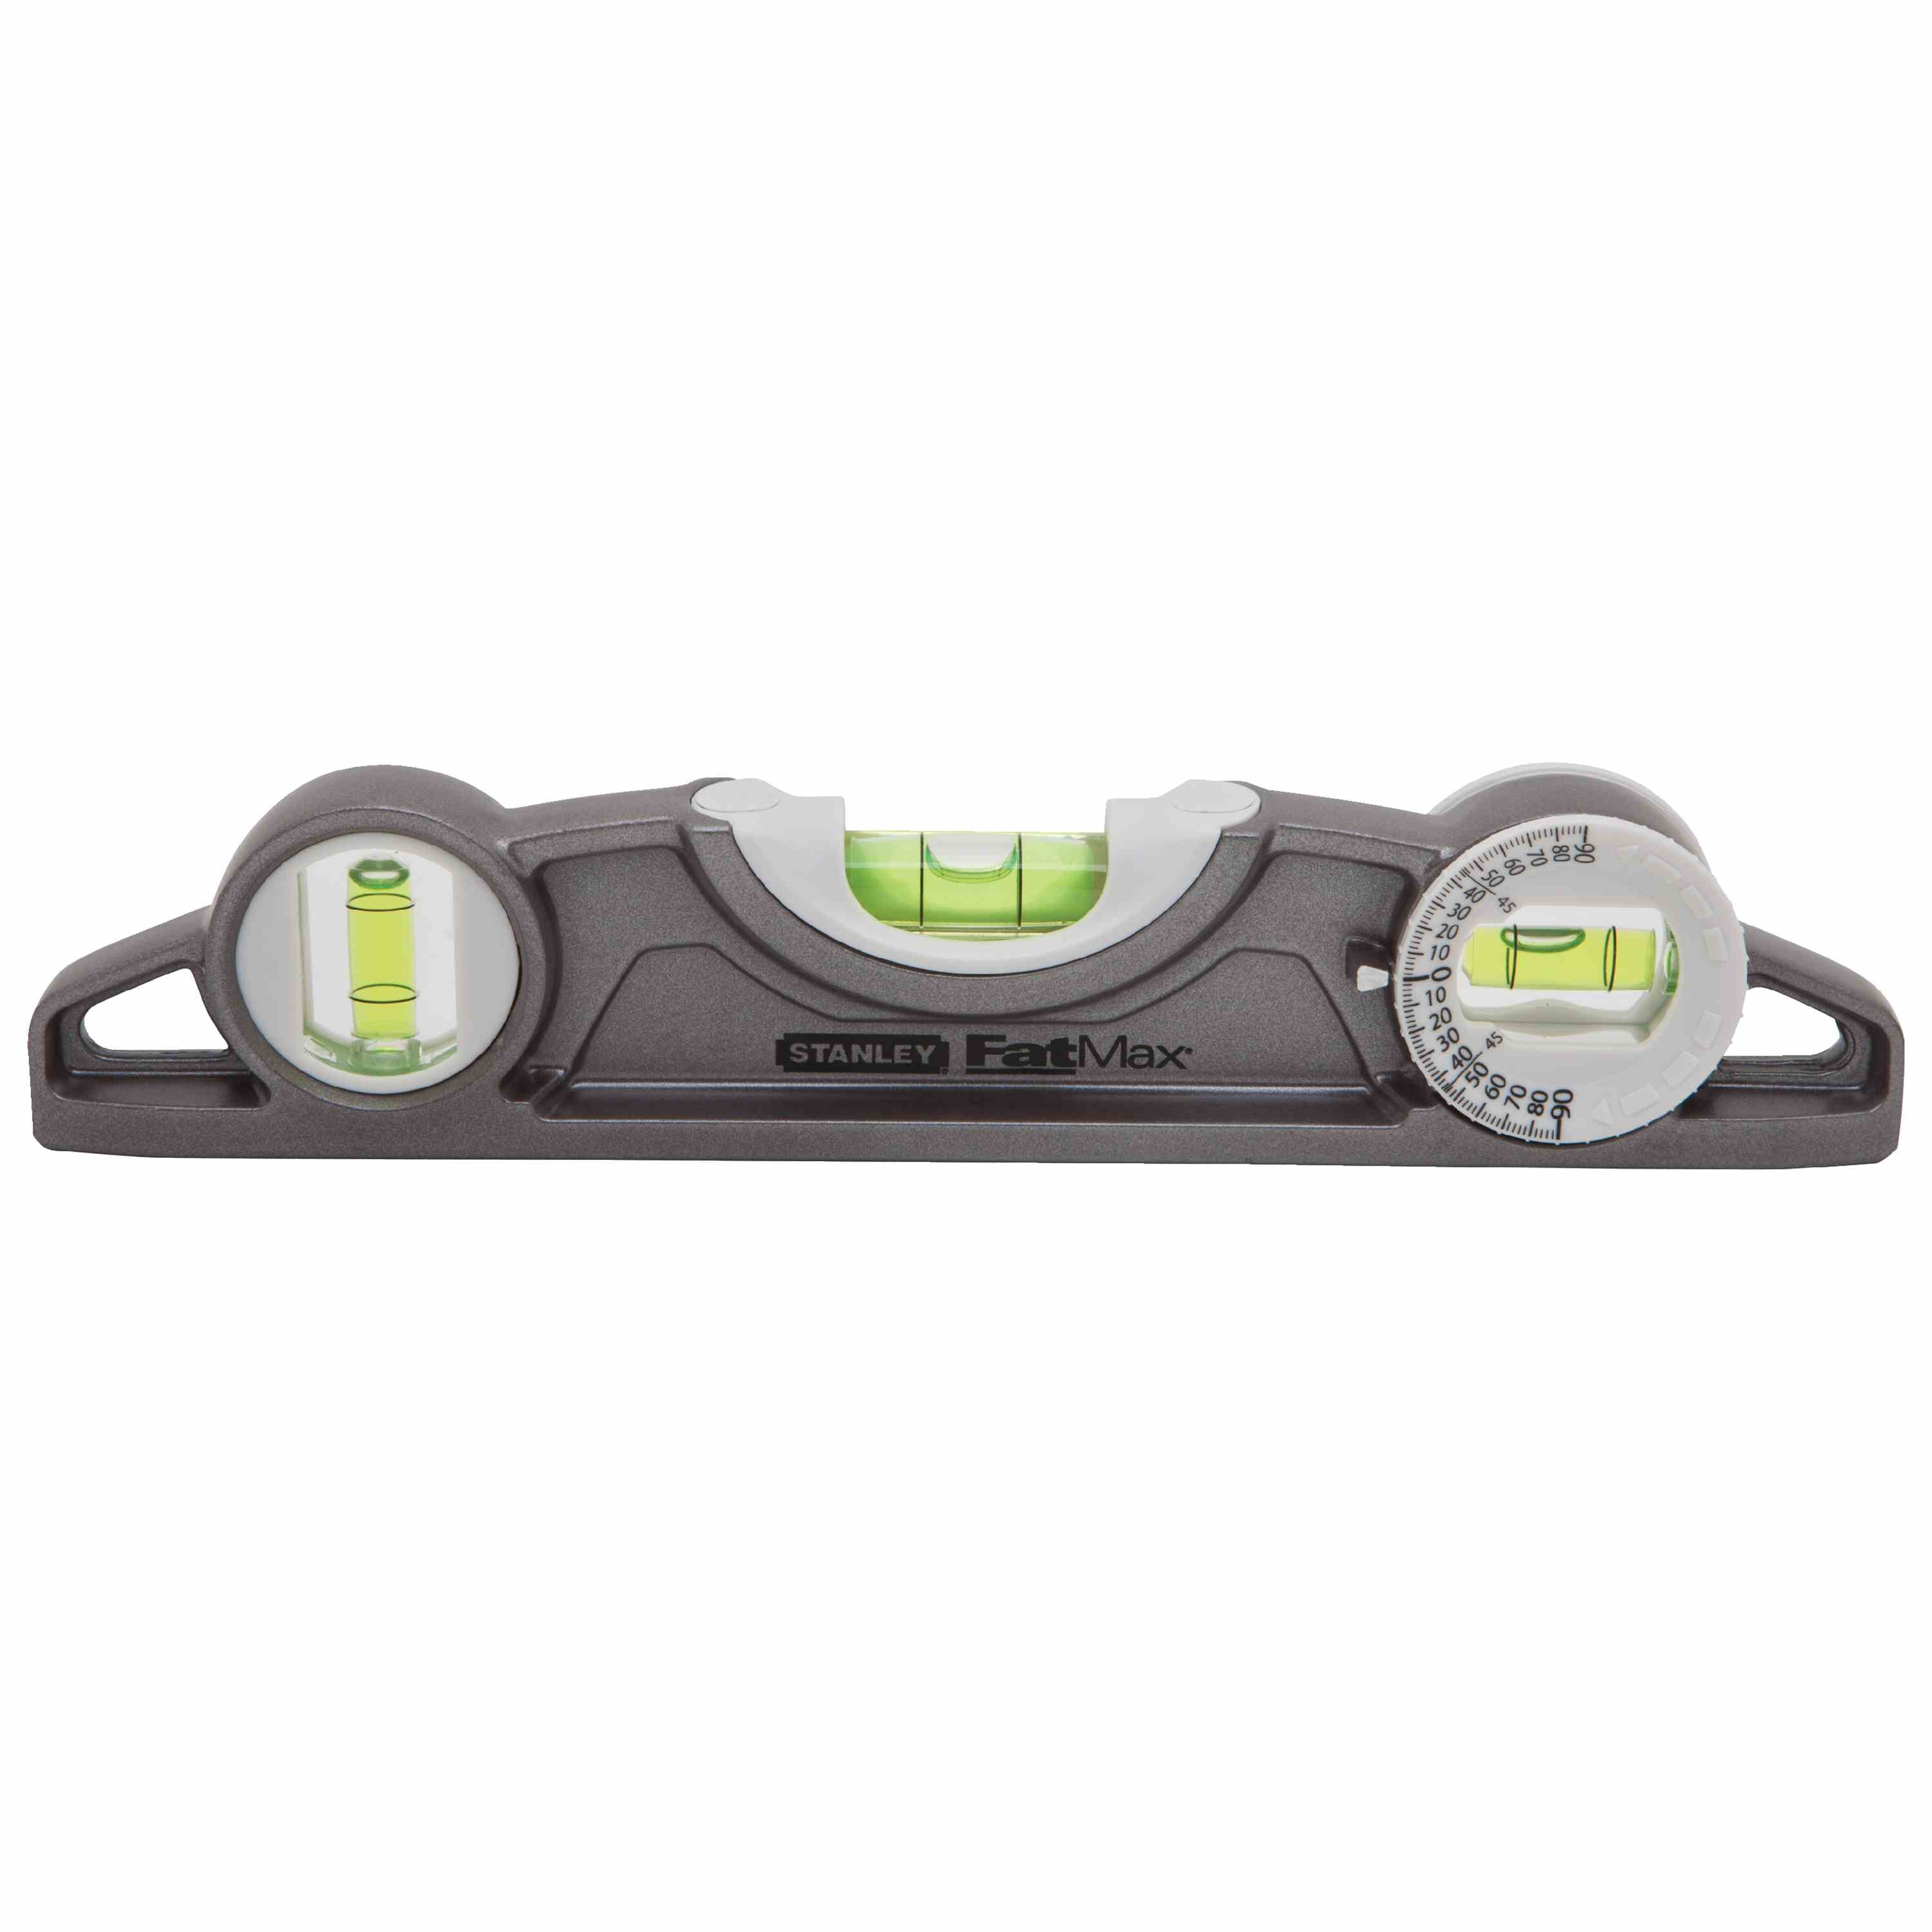 Stanley Tools - 1134 in FATMAX Magnetic Torpedo Level - 43-609